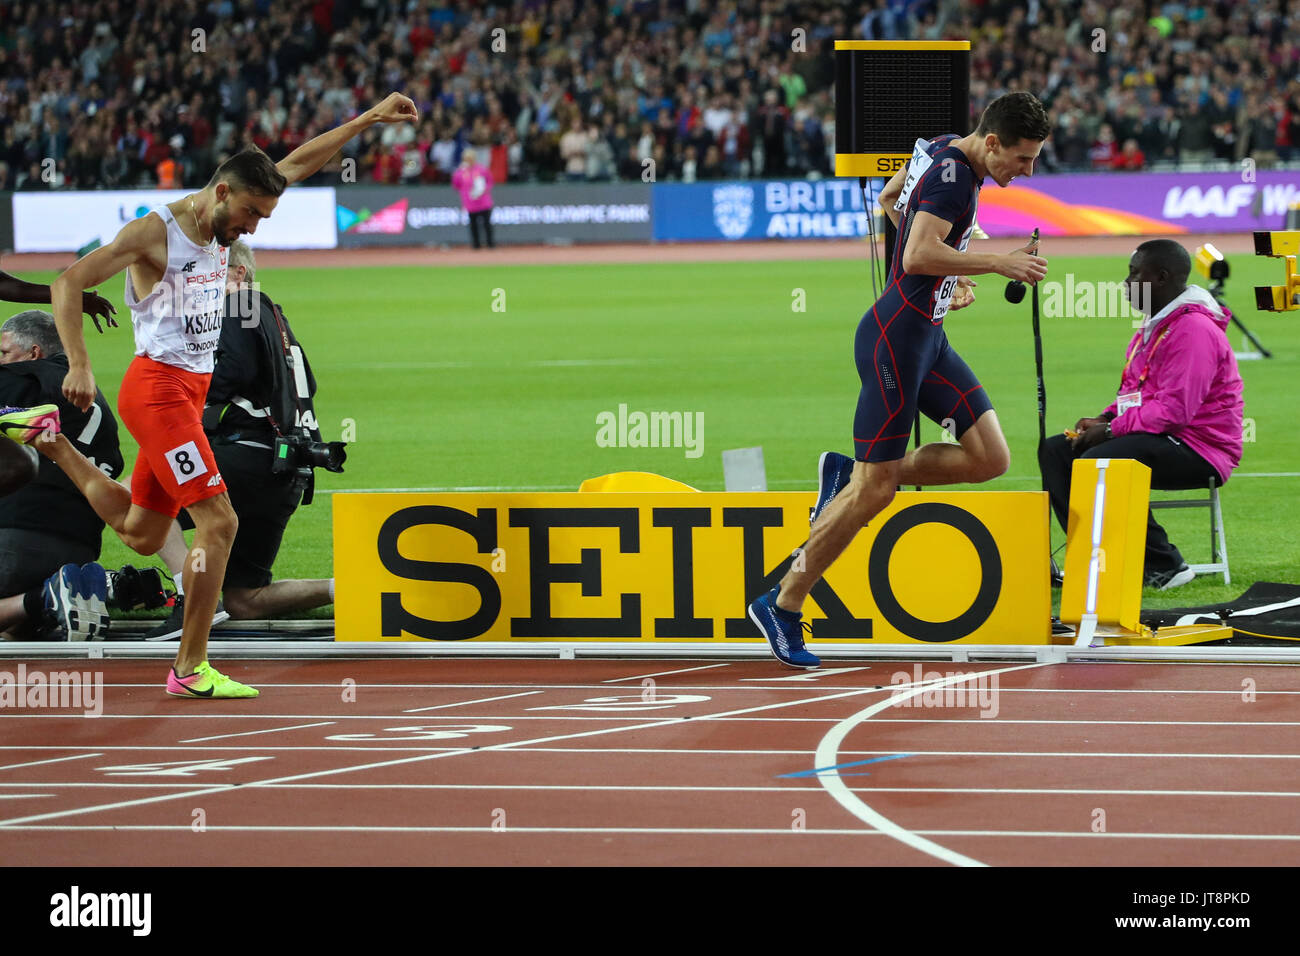 London, UK. 08th Aug, 2017. London, August 08 2017 . Pierre-Ambroise Bosse, France, wins the men's 800m final ahead of Adam Kszczot, Poland, on day five of the IAAF London 2017 world Championships at the London Stadium. Credit: Paul Davey/Alamy Live News - Stock Image